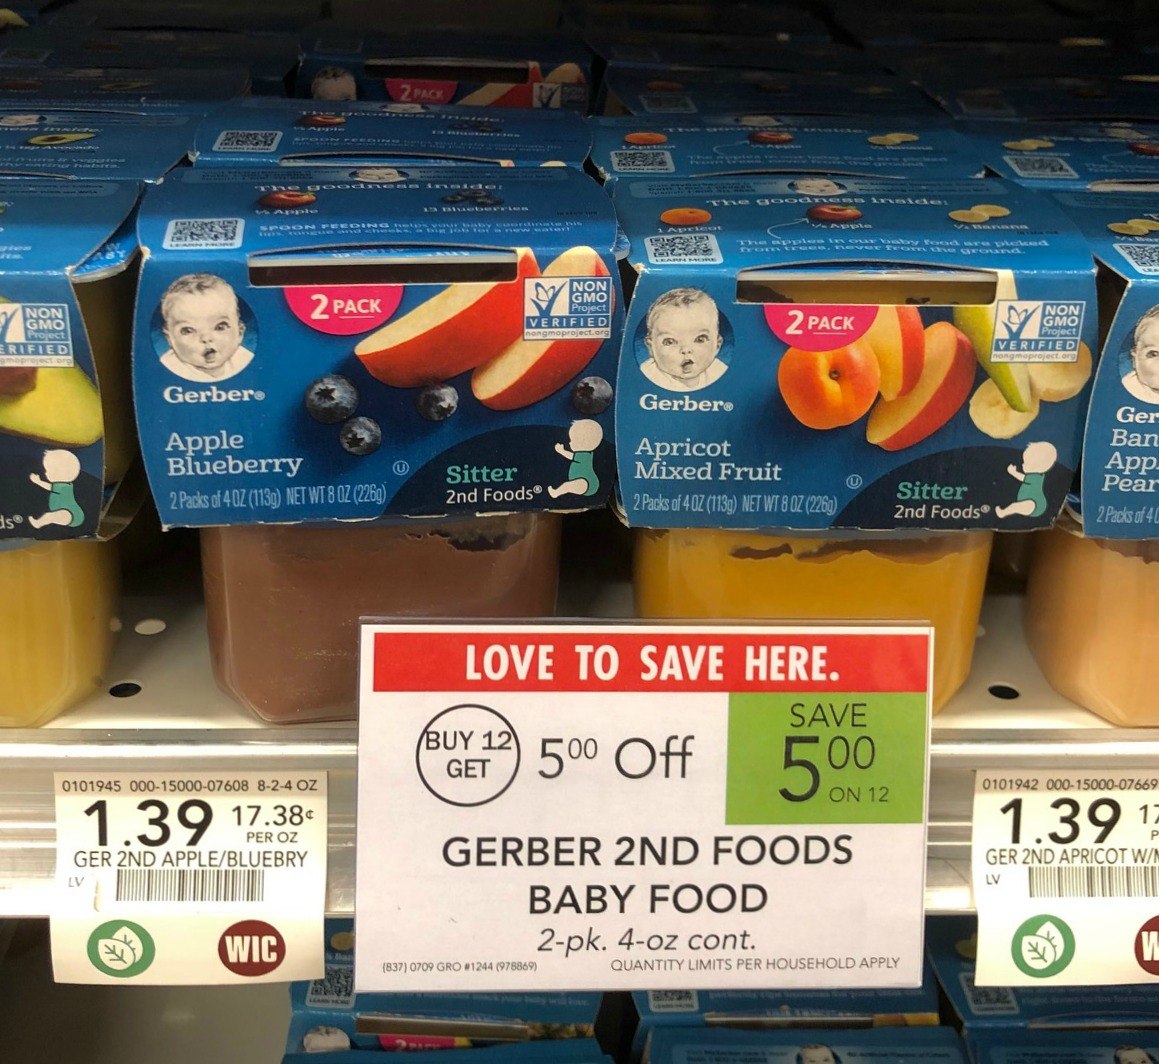 Gerber Baby Food Only 50¢ At Publix on I Heart Publix